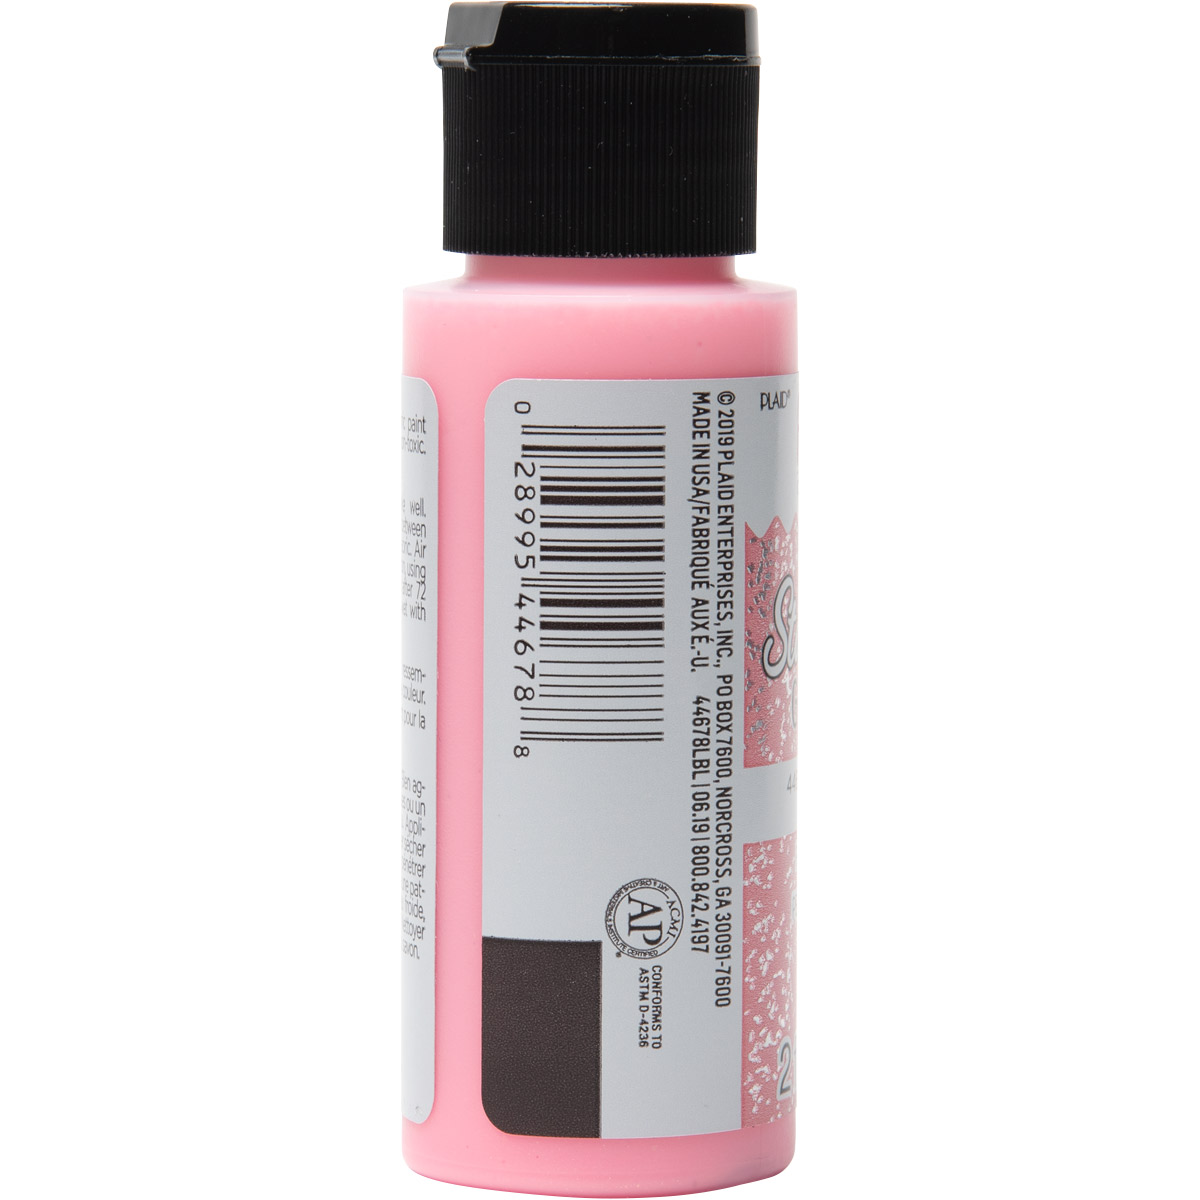 Fabric Creations™ StarStruck Glitter™ Fabric Paint - Strawberry Ice, 2 oz. - 44678